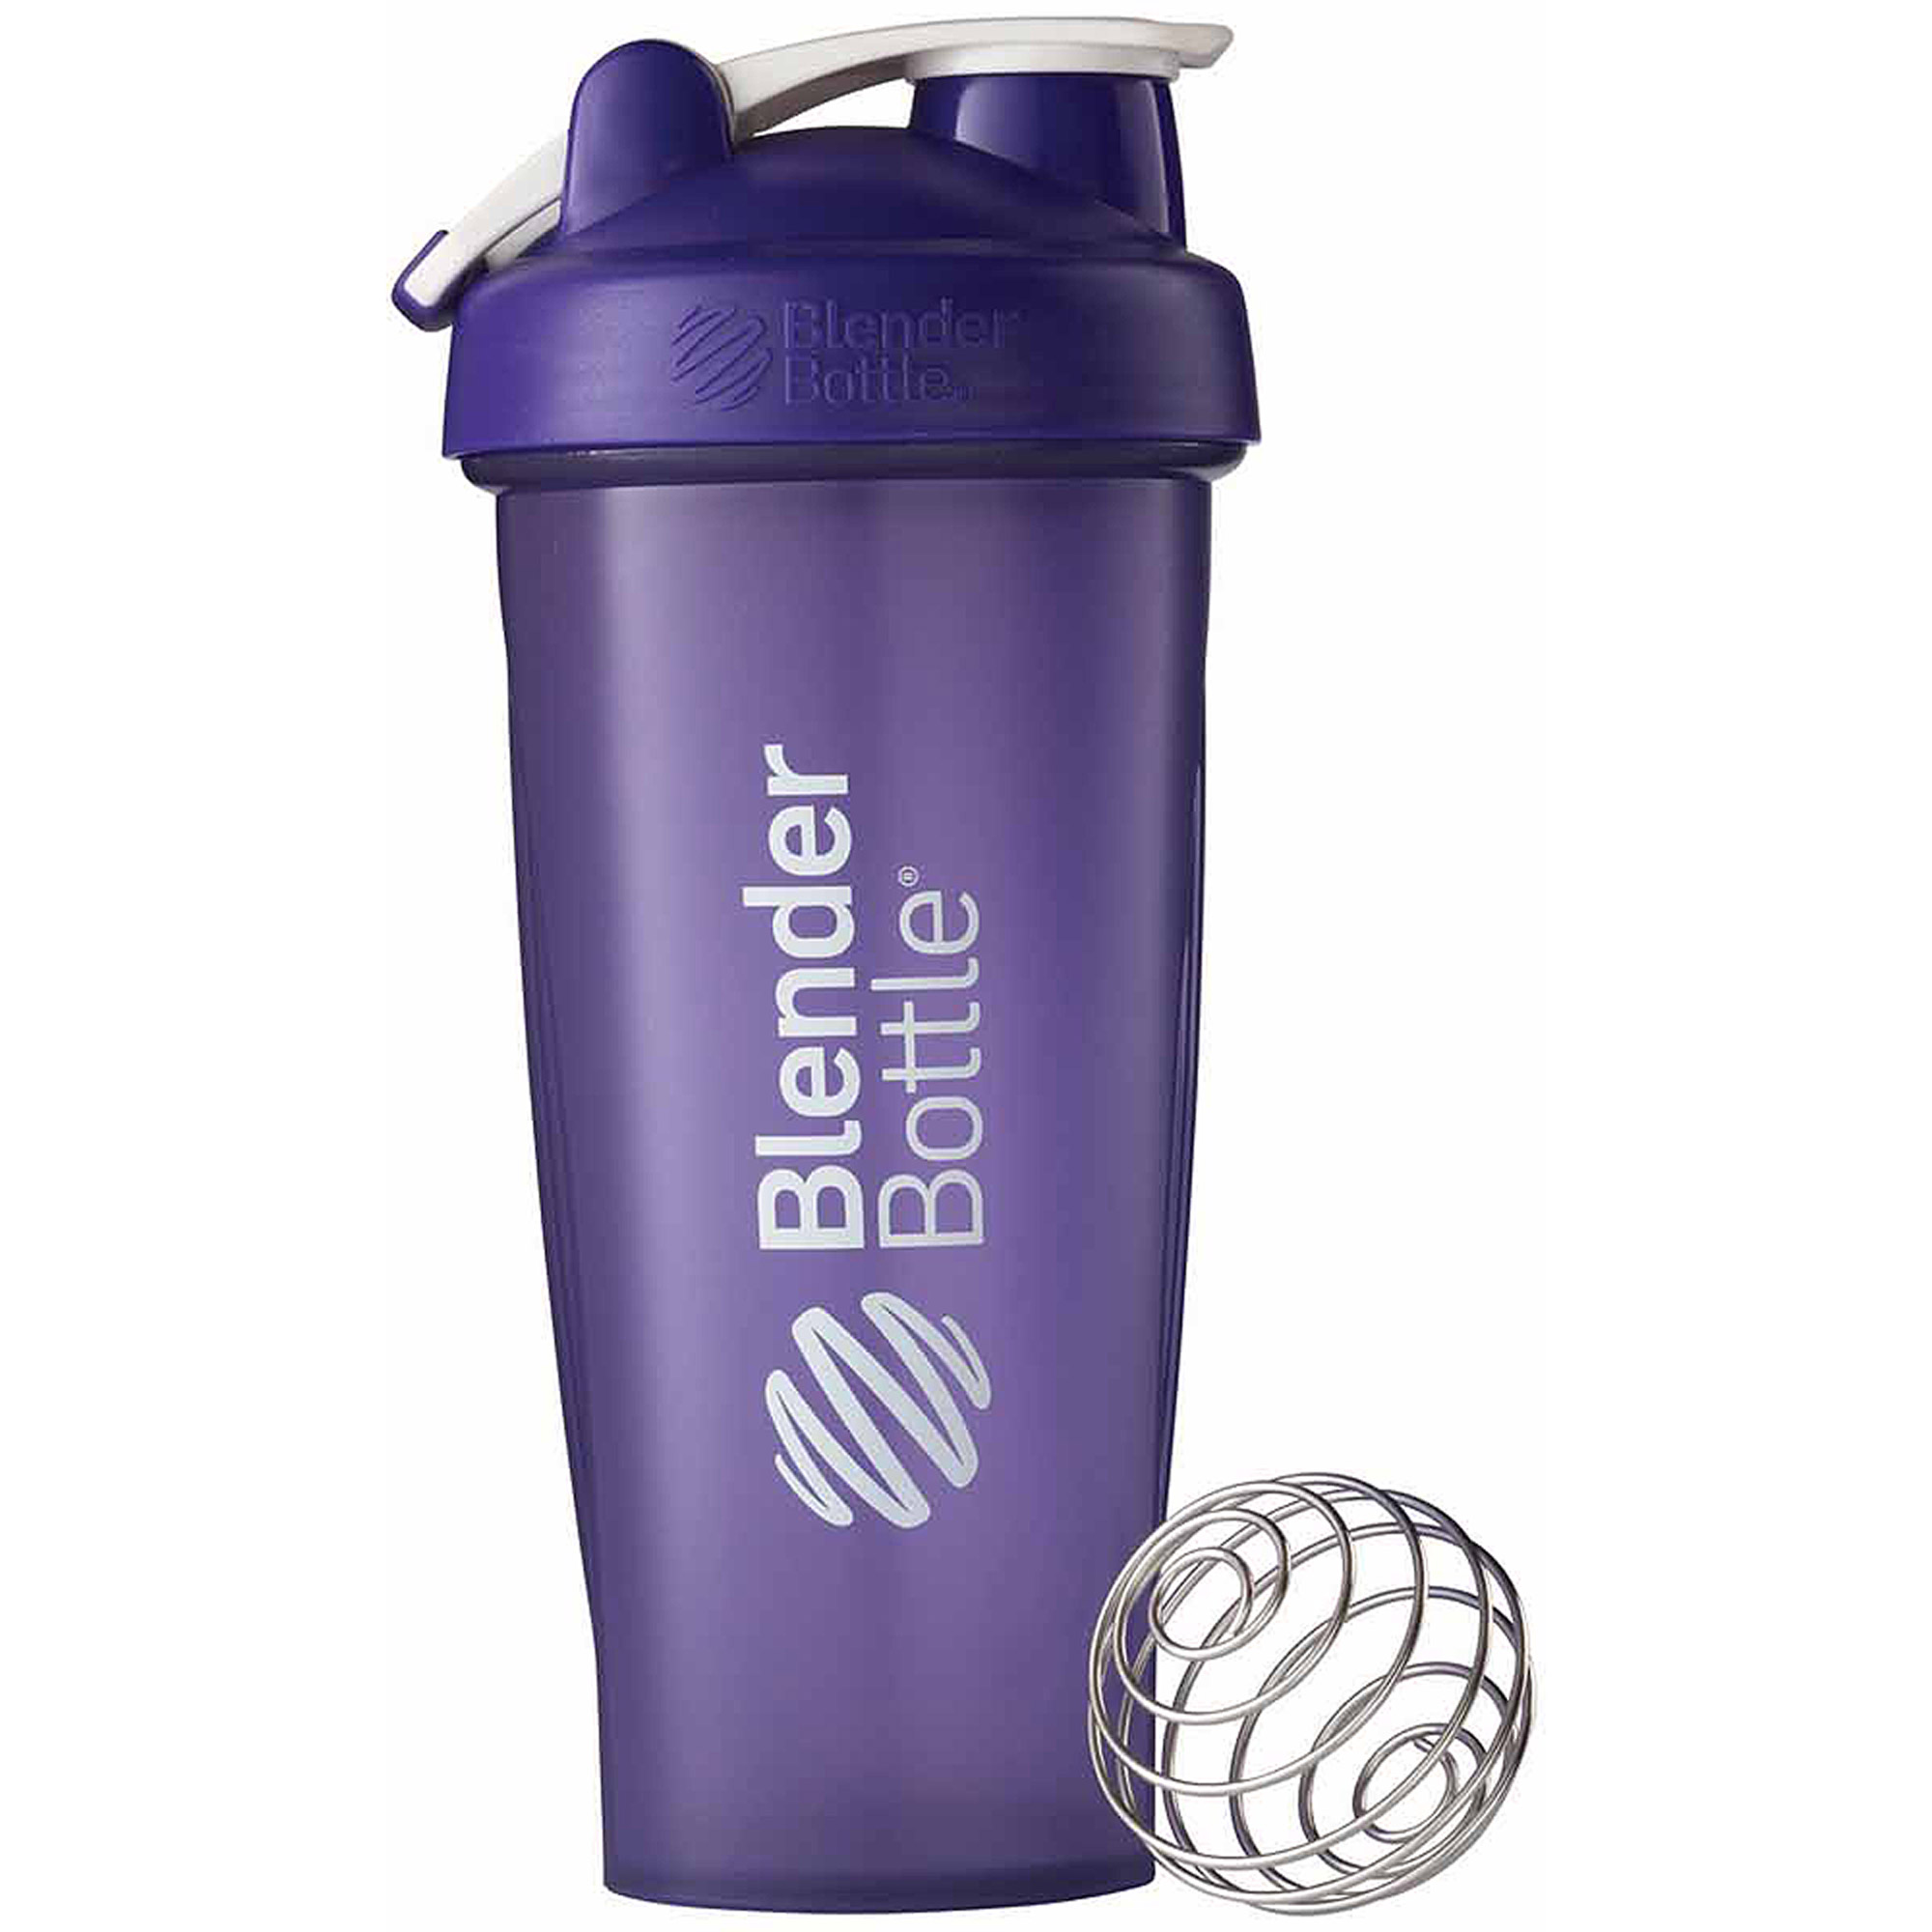 BlenderBottle 28-Ounce Classic Bottle with Loop, Full Color Purple